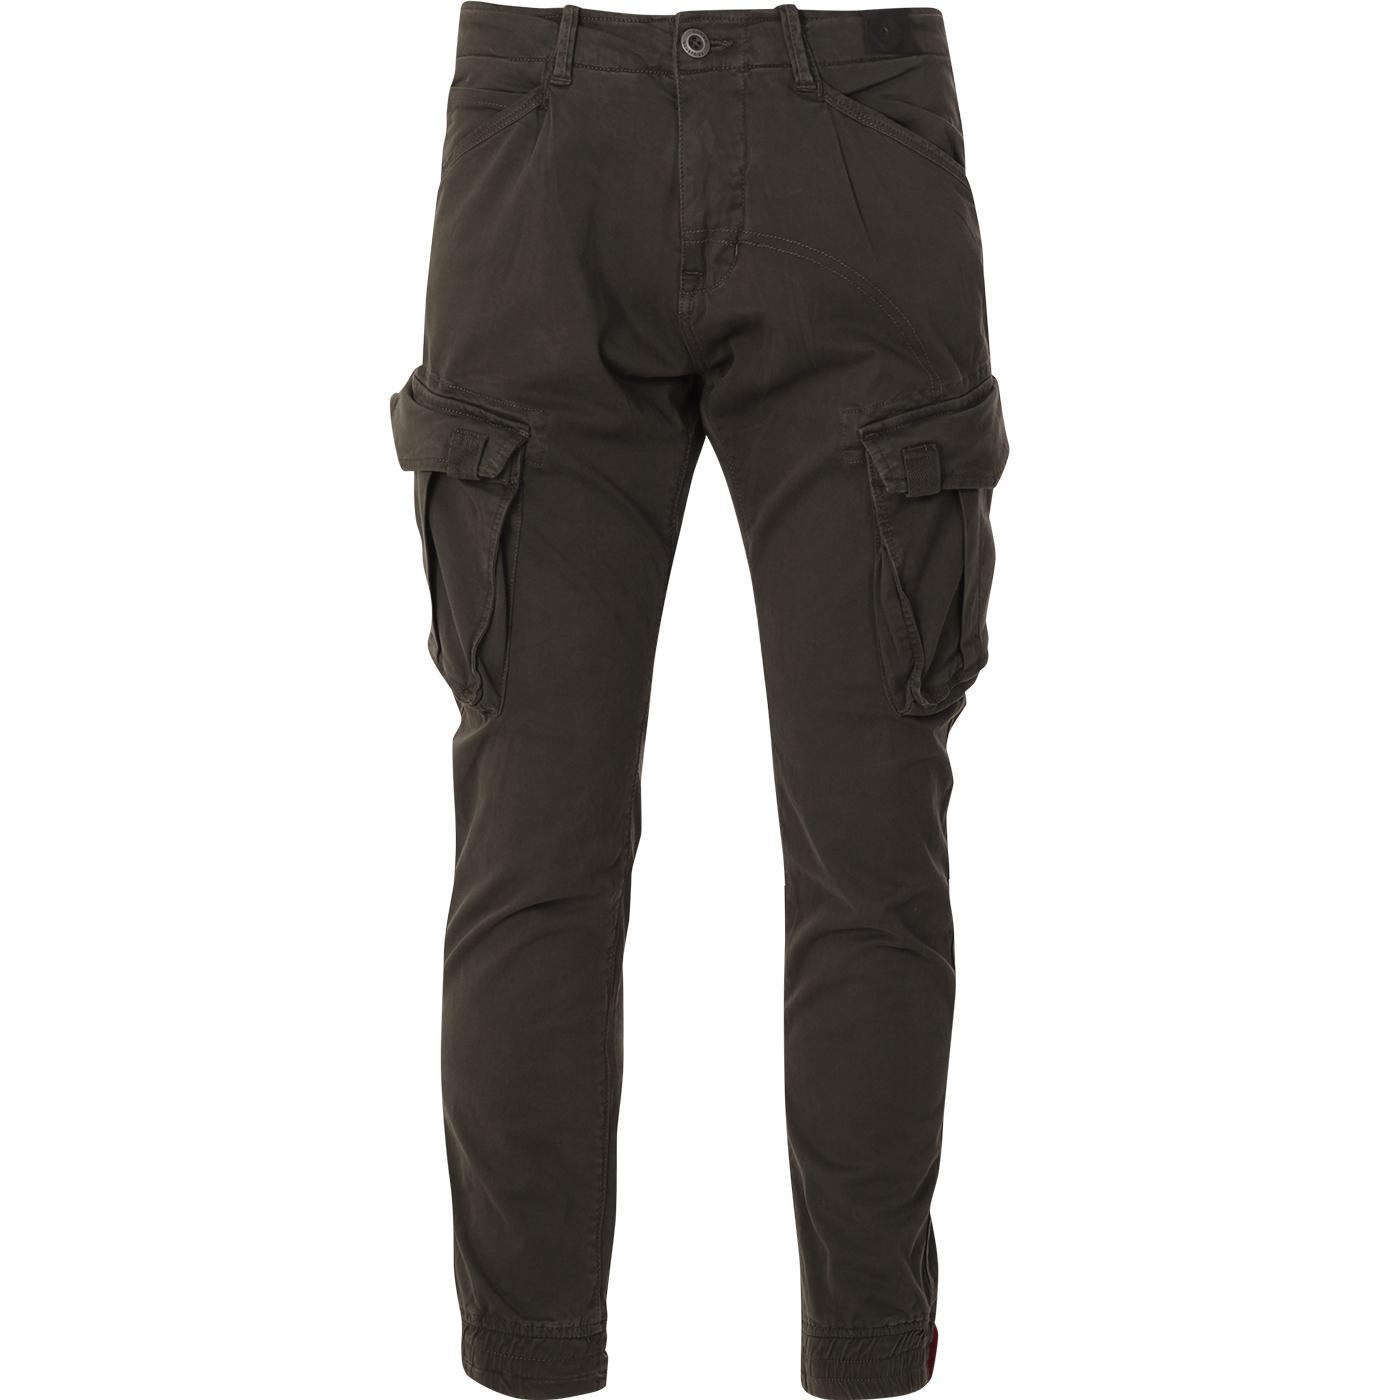 ALPHA INDUSTRIES Tapered Fit Cargo Pants (GB)